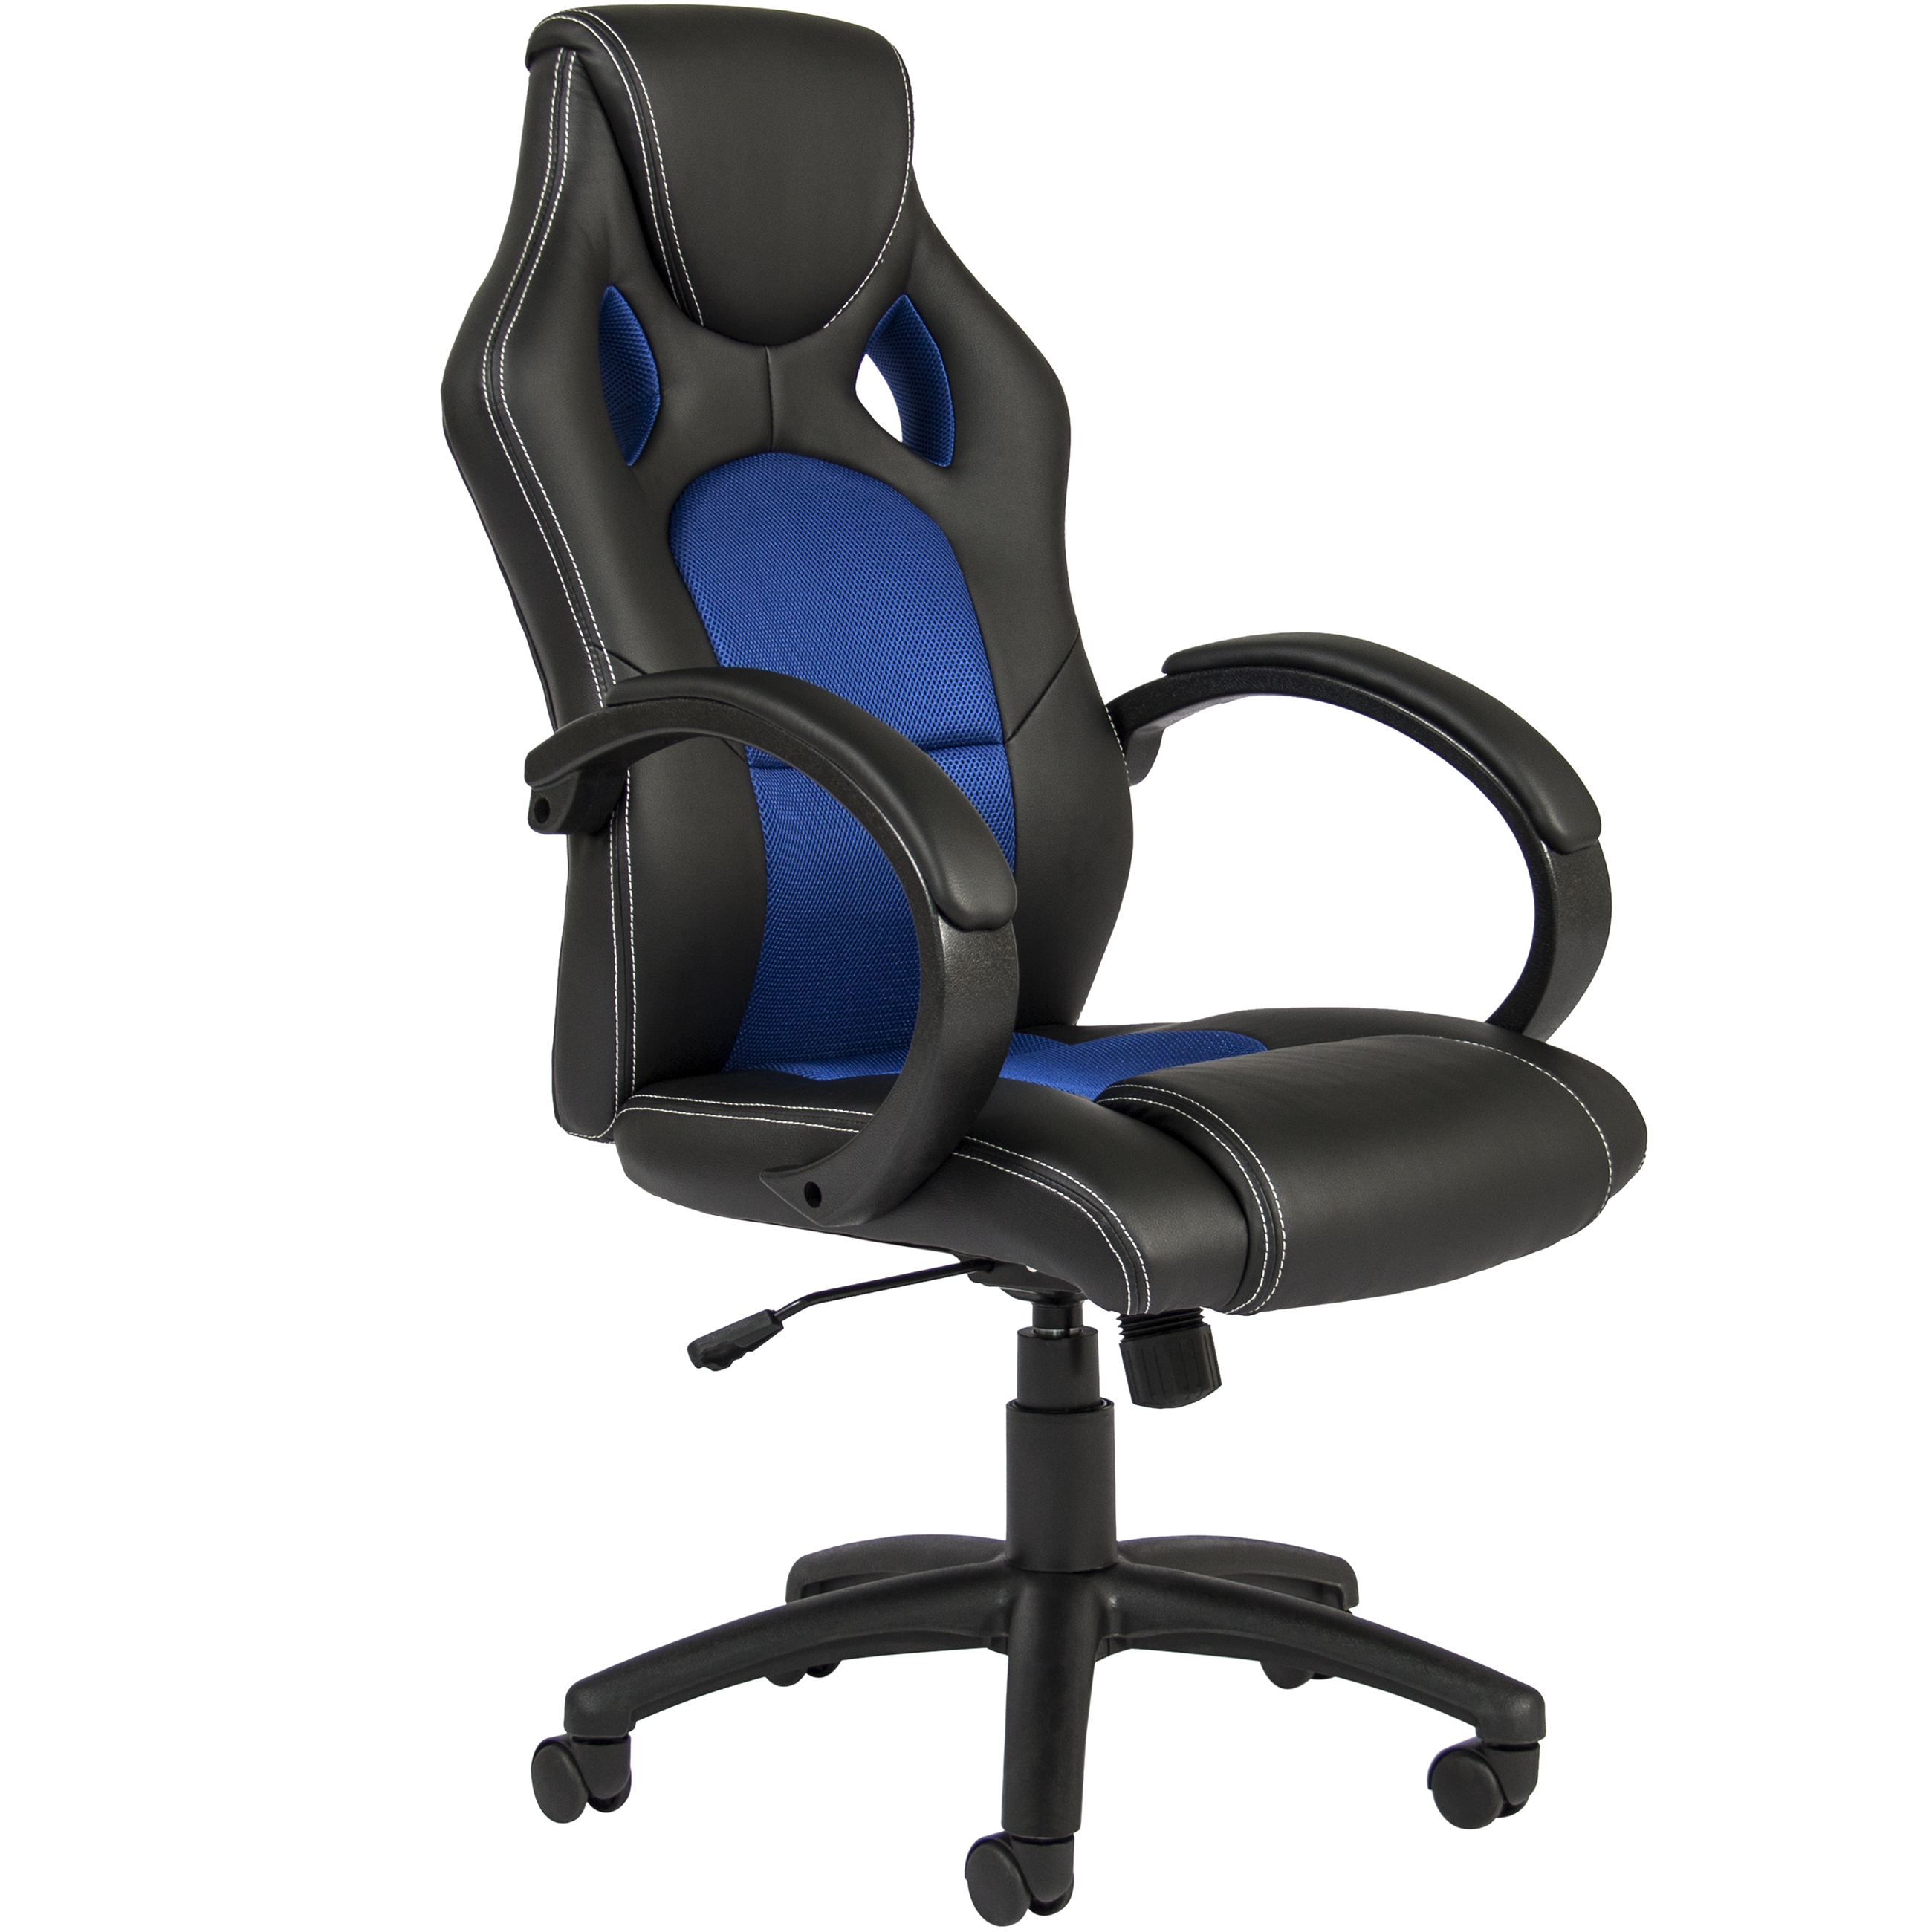 BCP Executive Racing Gaming Office Desk Chair PU Leather Swivel - Back